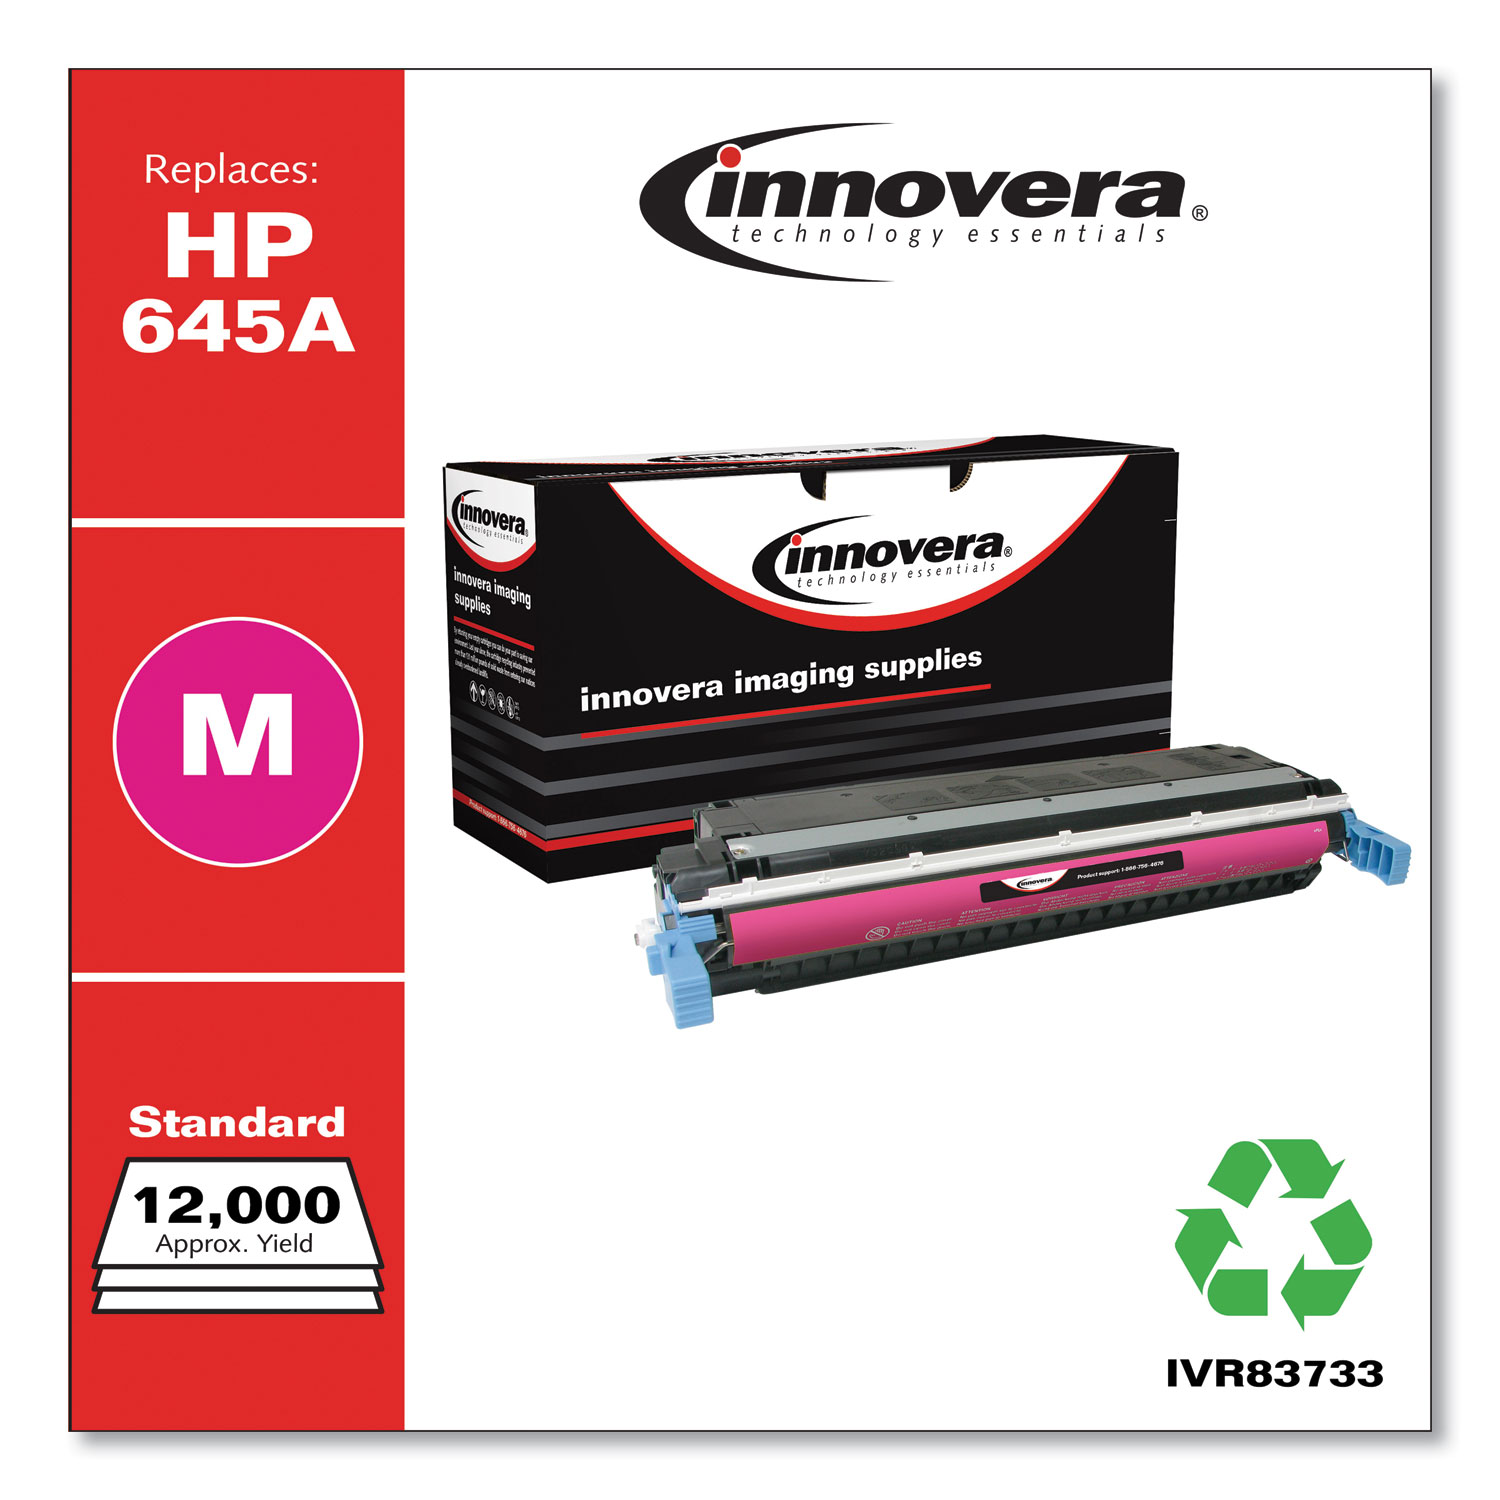 Remanufactured Magenta Toner, Replacement for HP 645A (C9733A), 12,000 Page-Yield IVR83733